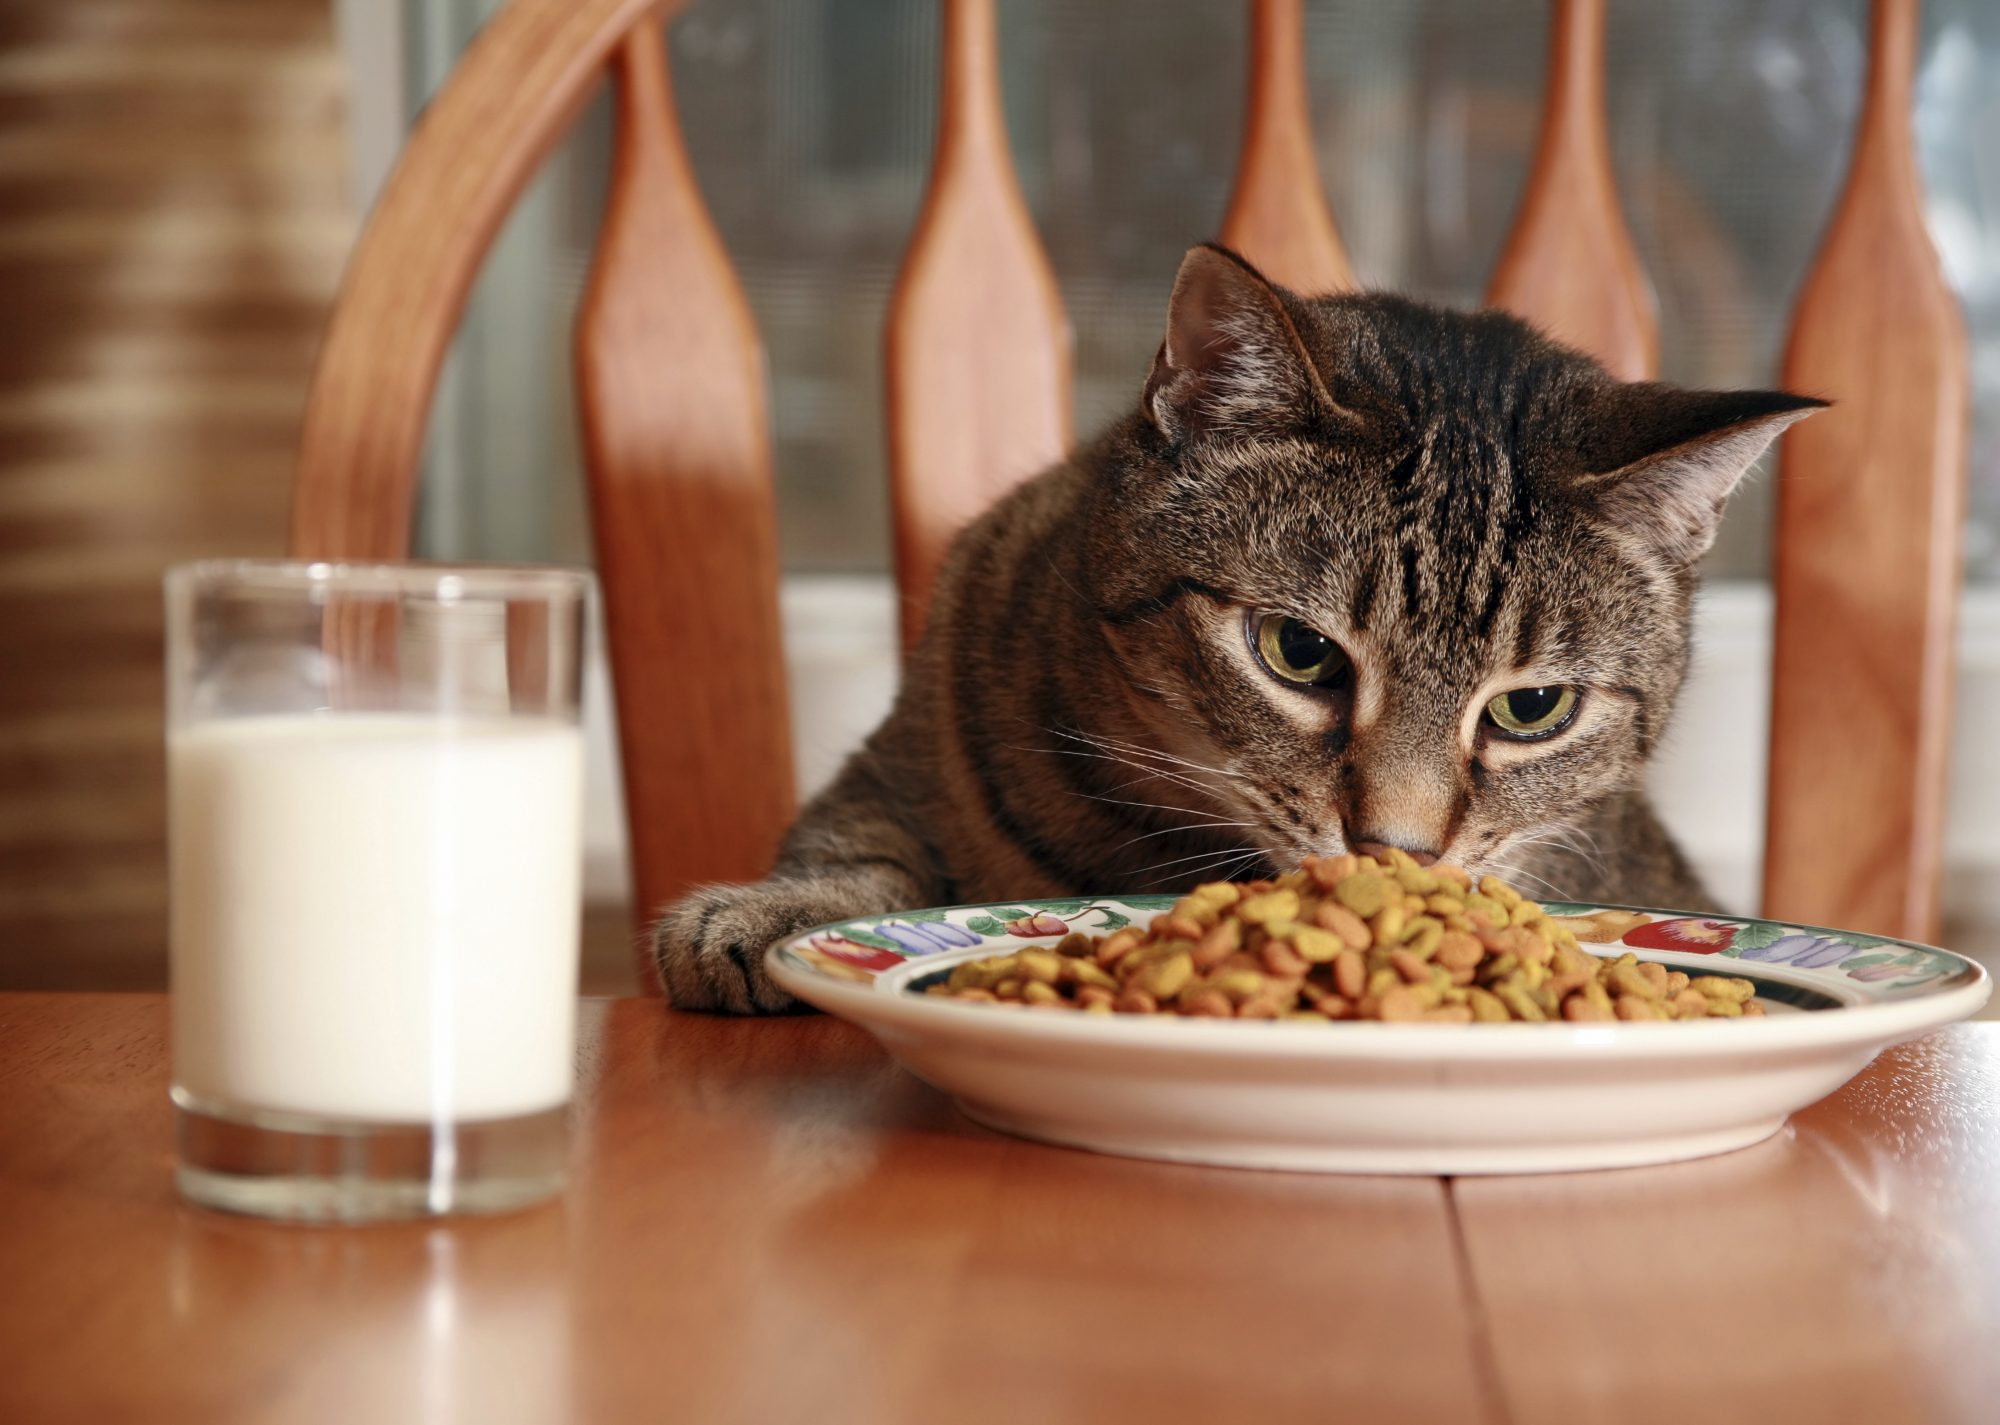 cat eating from plate and dinner table